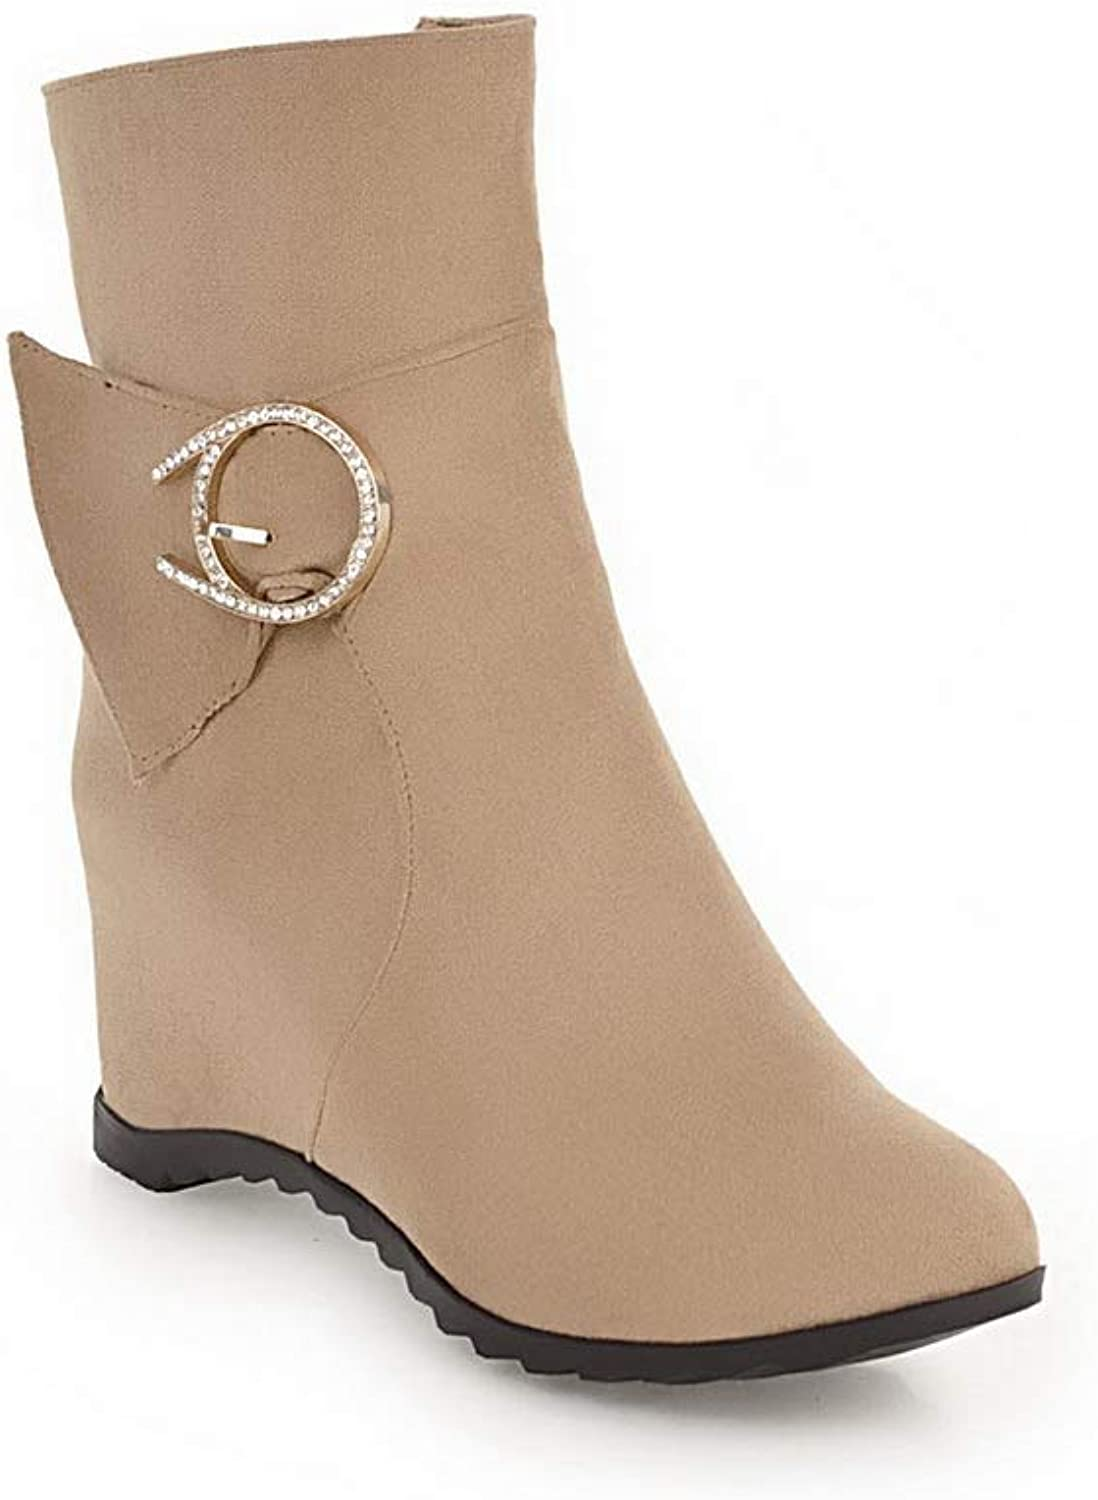 AN Womens Heighten Inside Zipper Imitated Suede Boots DKU02194